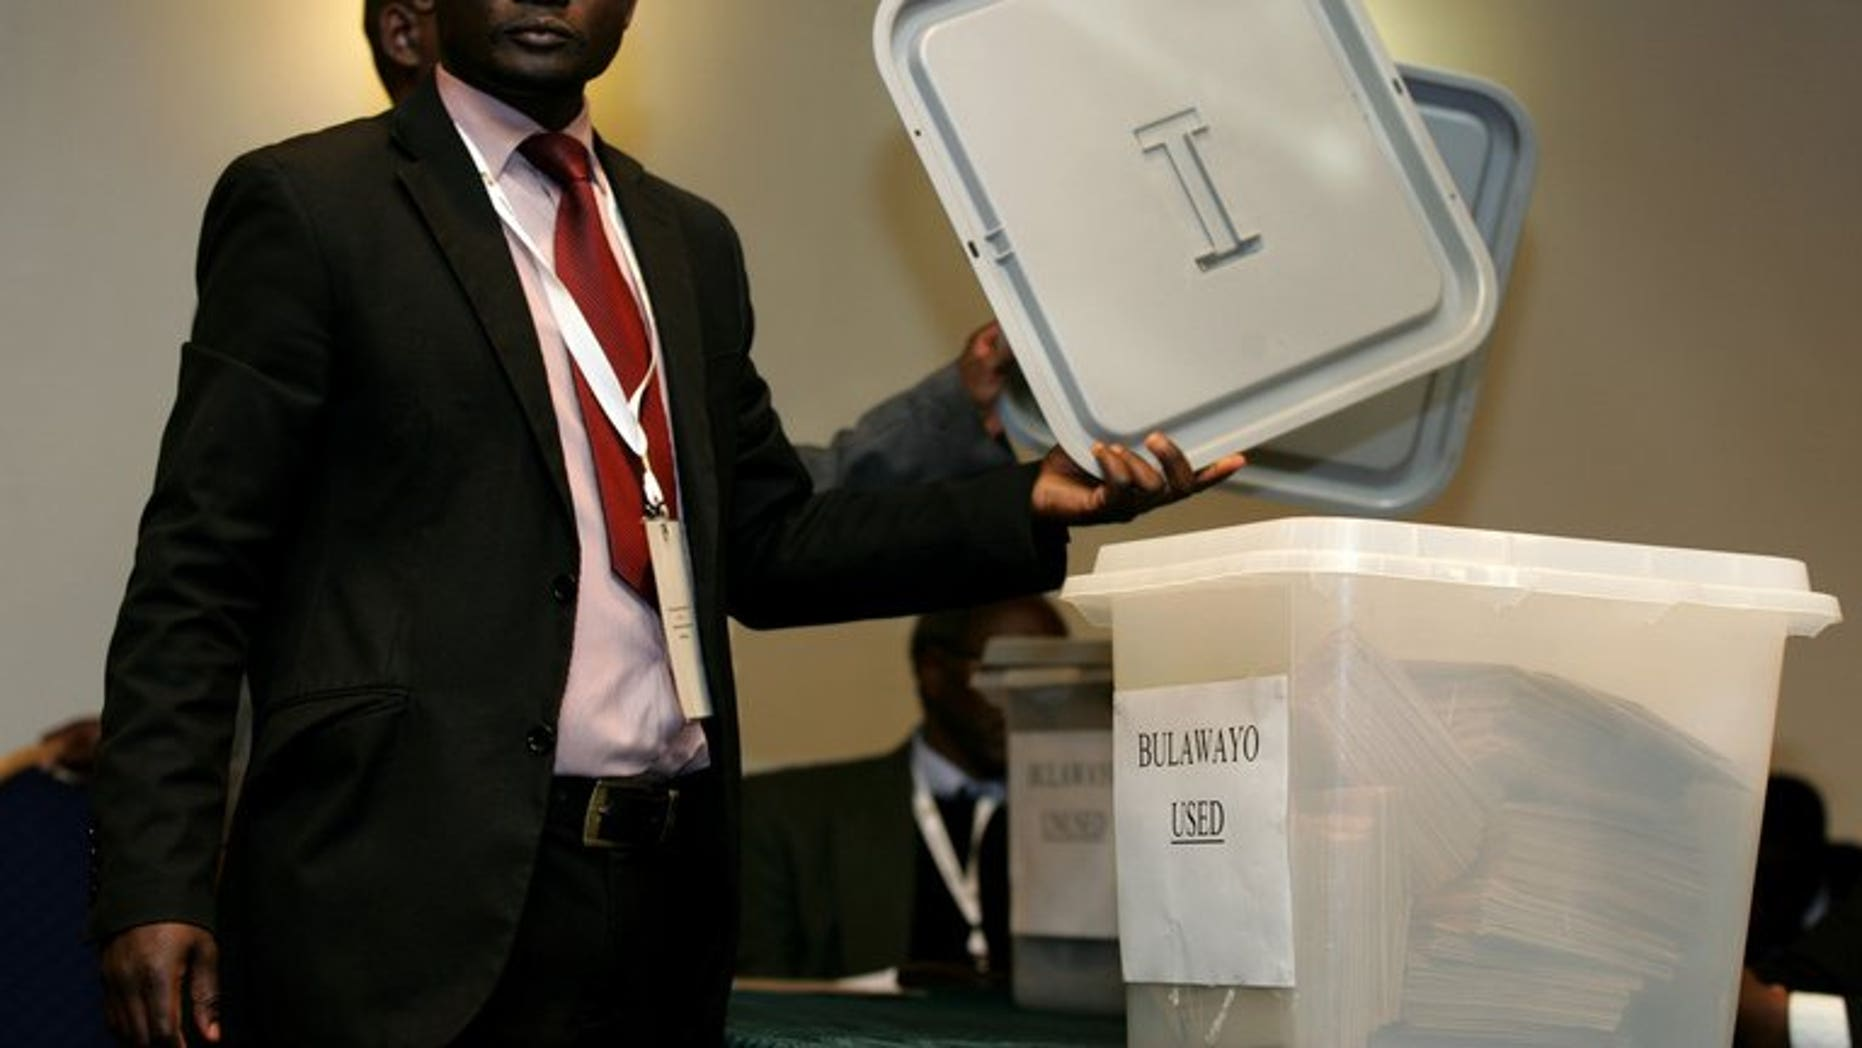 An official from the Zimbabwe Electoral Commission (ZEC) shows a lid before sealing a ballot box in harare on July 19, 2013. Zimbabwe election authorities insisted Tuesday that they would be ready to hold general elections in a week's time, despite fears of vote rigging and a lack of funding.